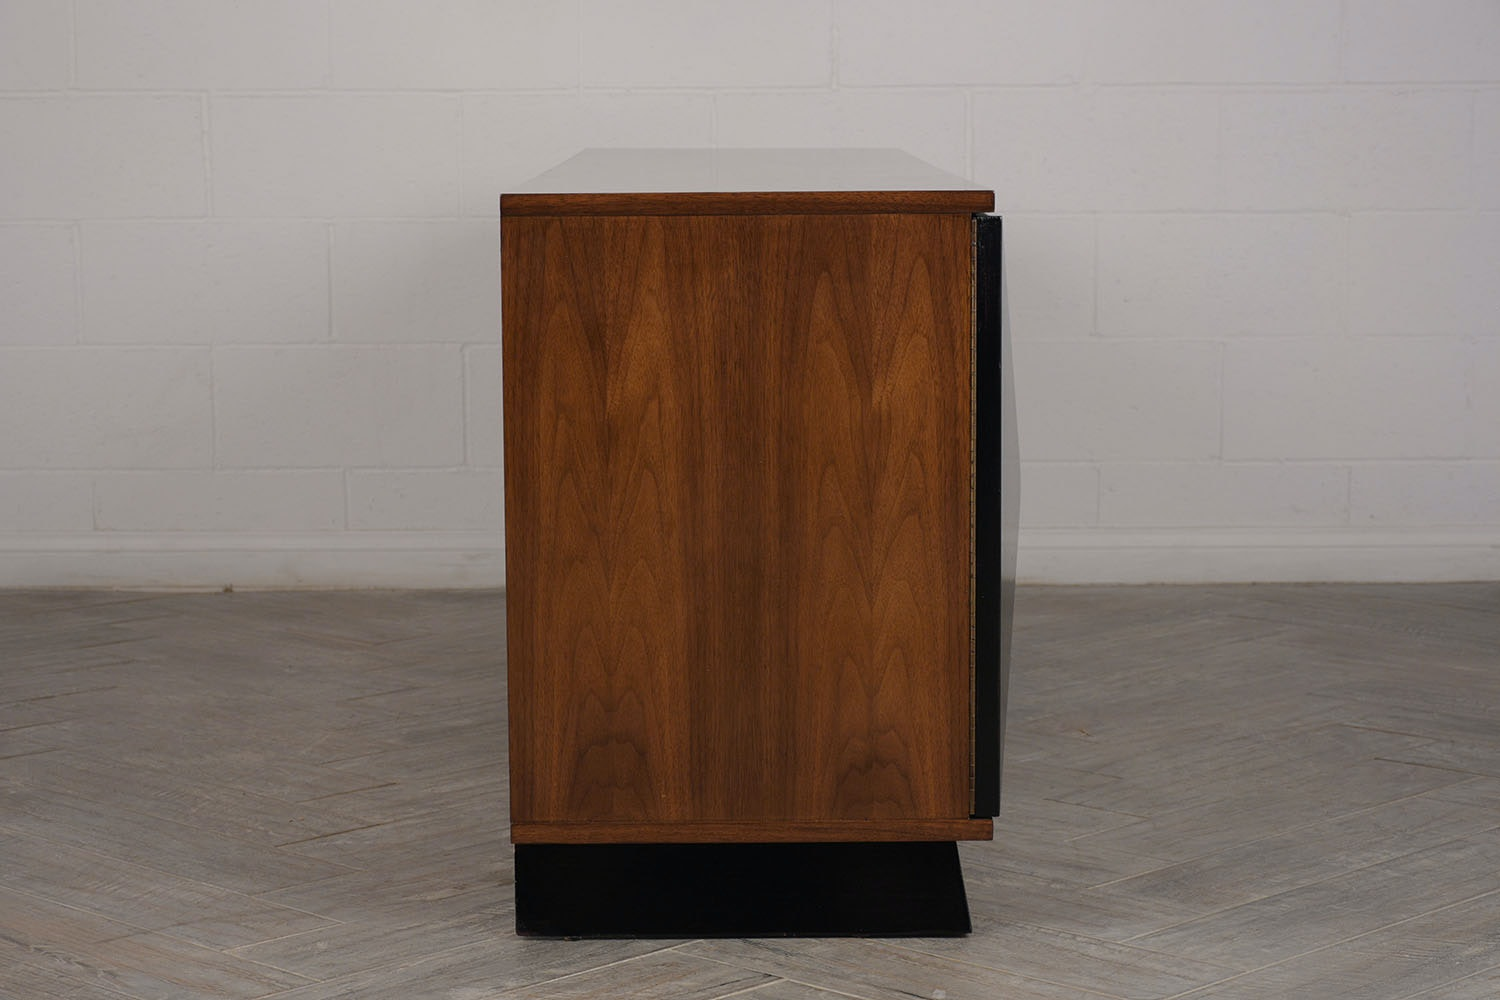 A Vintage 1960 S 3 Section Mid Century Modern Credenza Castle Antiques Inc Boutique Furniture In North Hollywood Ca